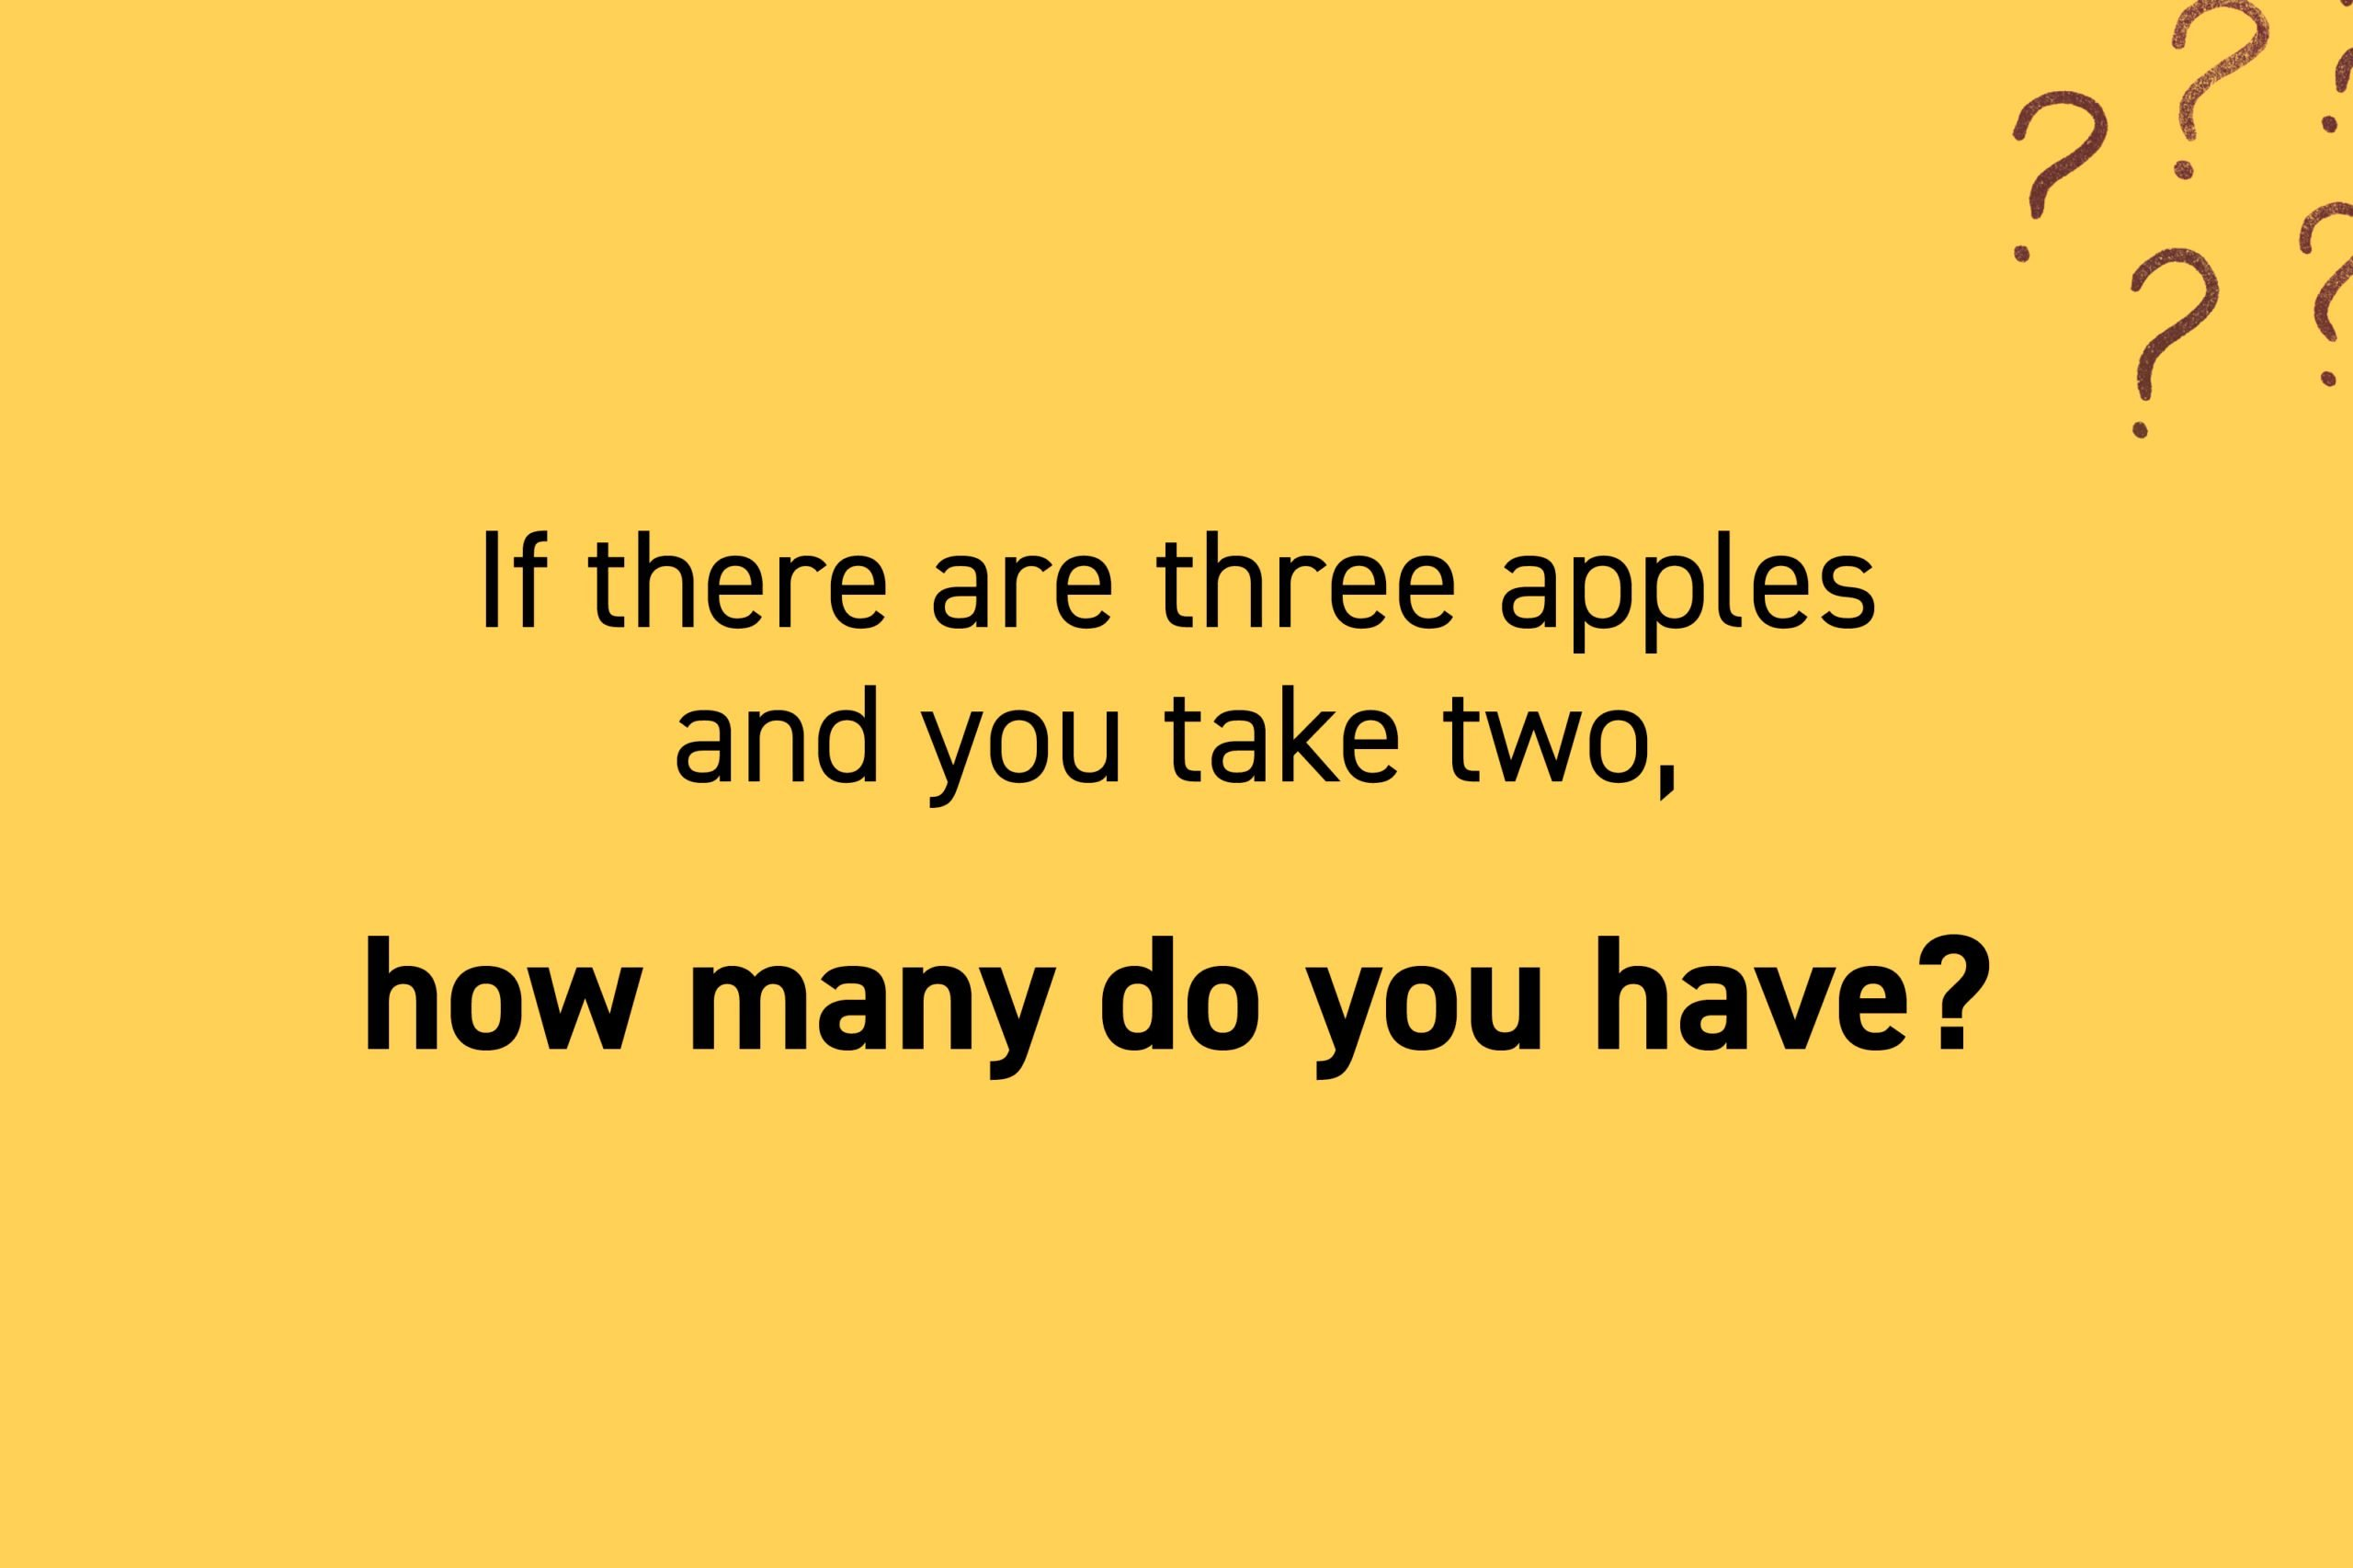 If there are three apples and you take two, how many do you have?